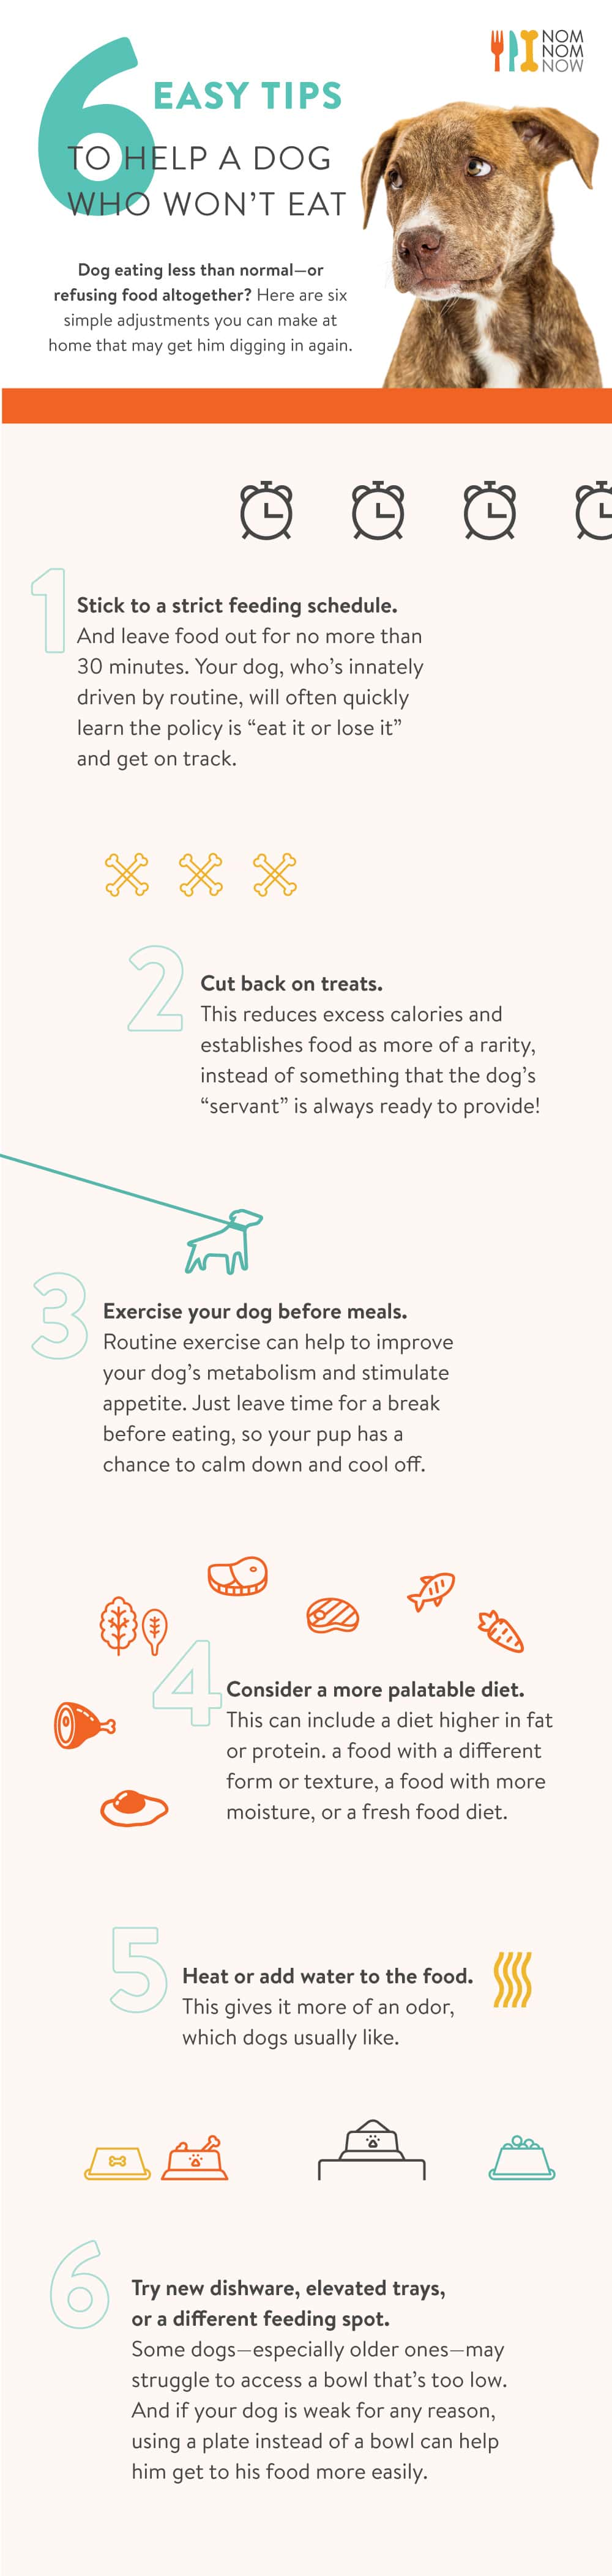 6 easy tips for dogs that are not eating